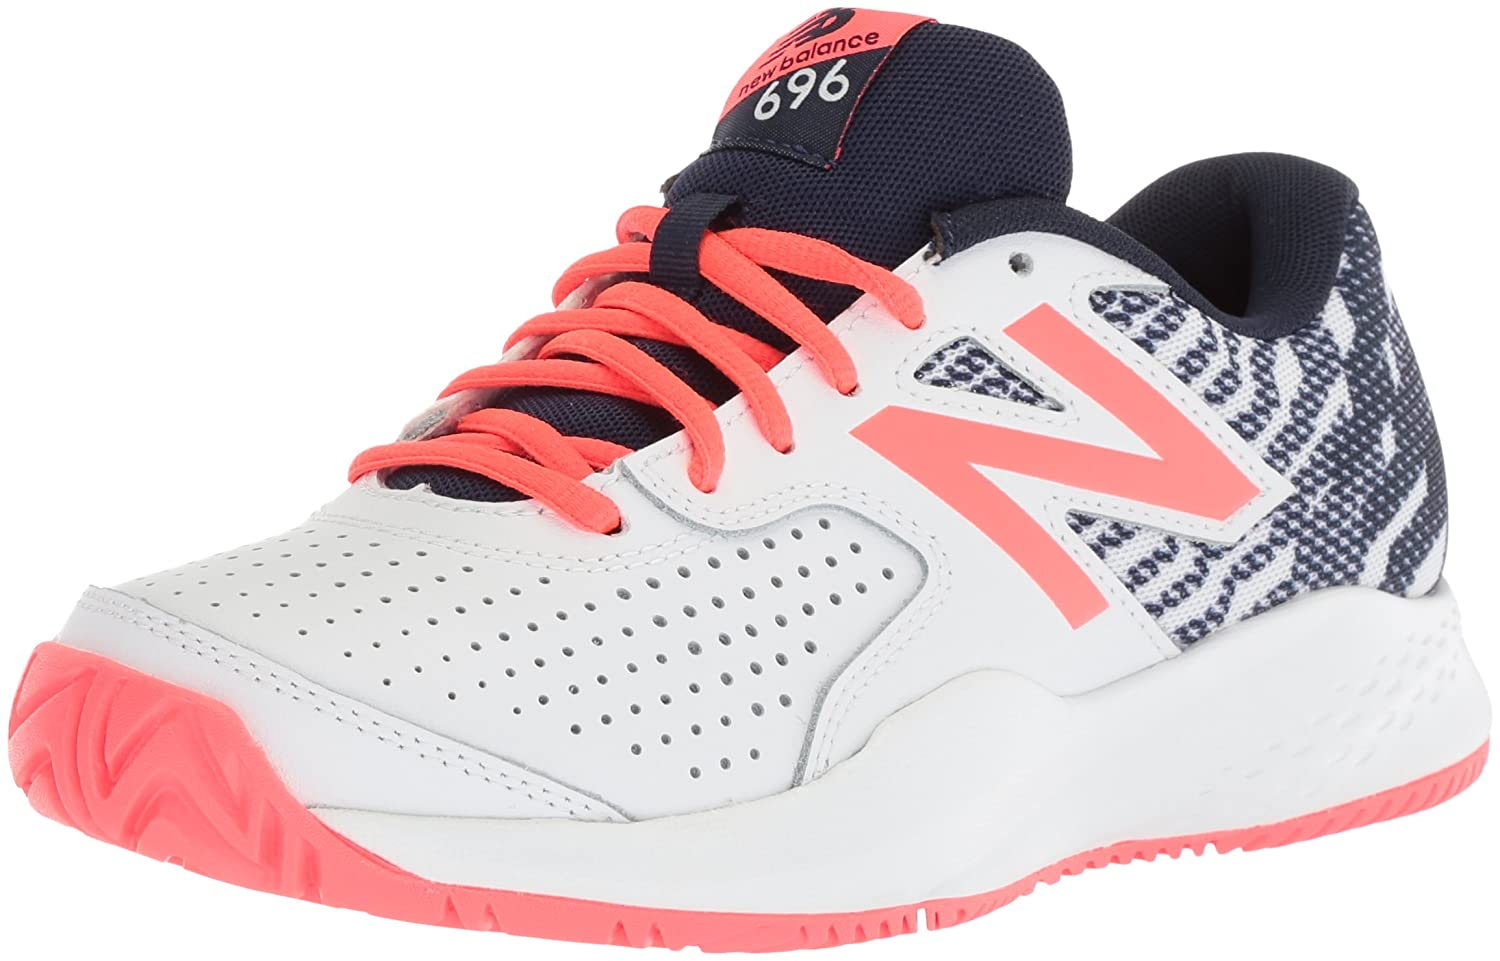 New B06XSBTBT7 Balance Women's 696v3 Tennis-Shoes B06XSBTBT7 New 7 B(M) US|Pigment/Vivid Coral 46fb9f